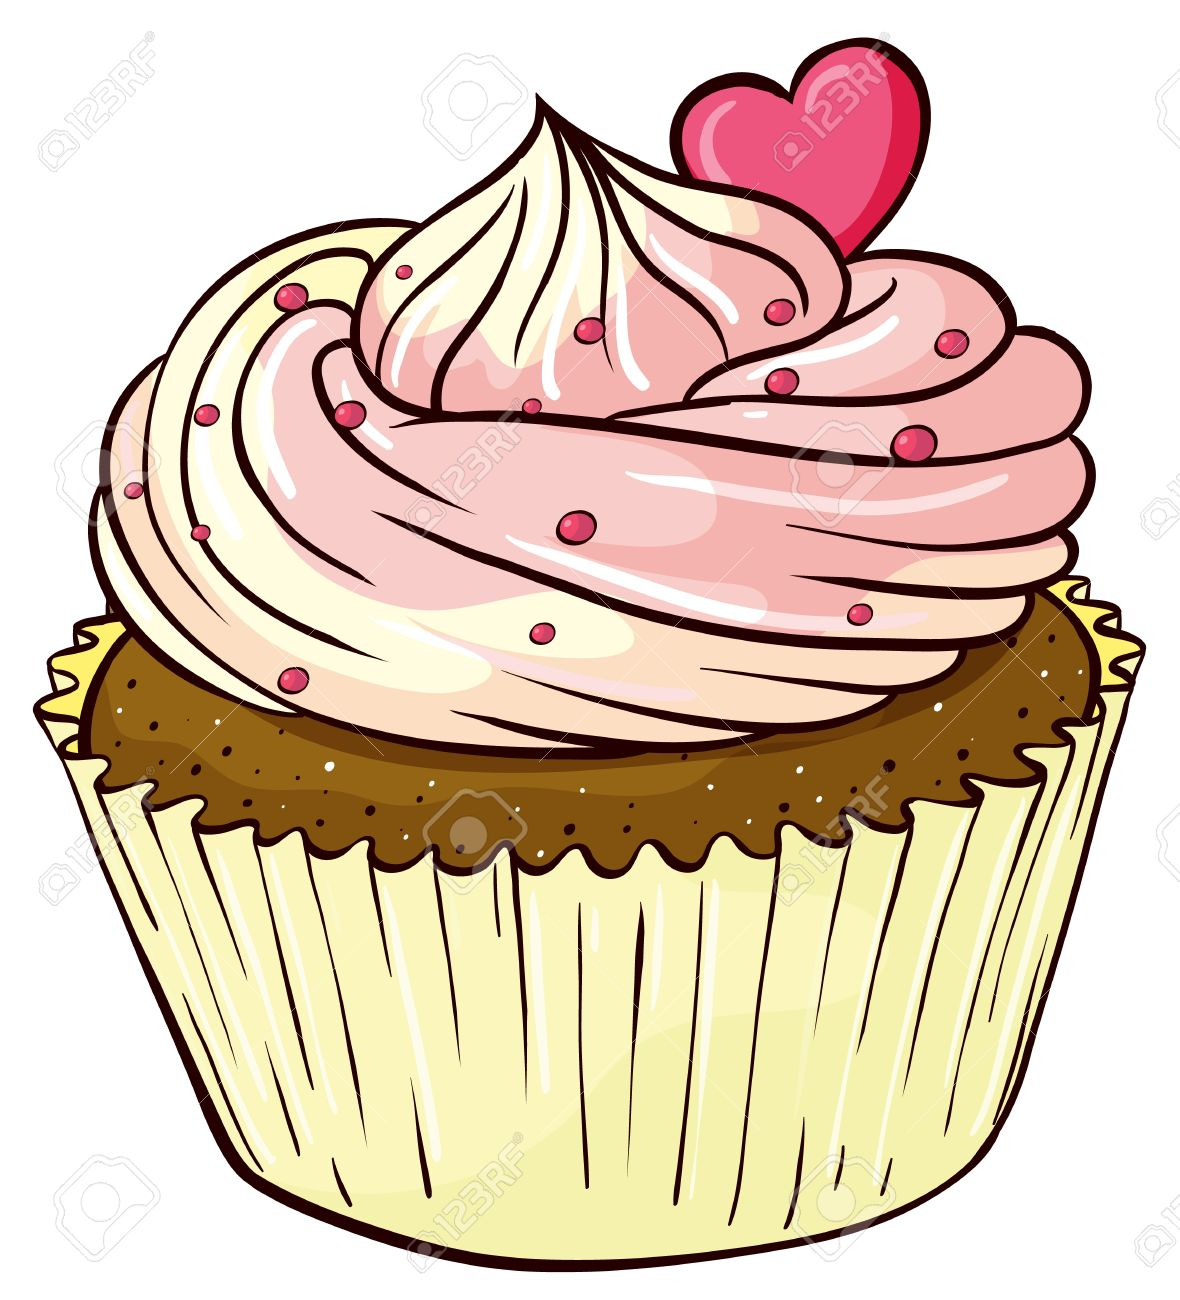 Cupcake Animated Images : Illustration Of An Isolated Cupcake Stock Vector Cupcakes ...